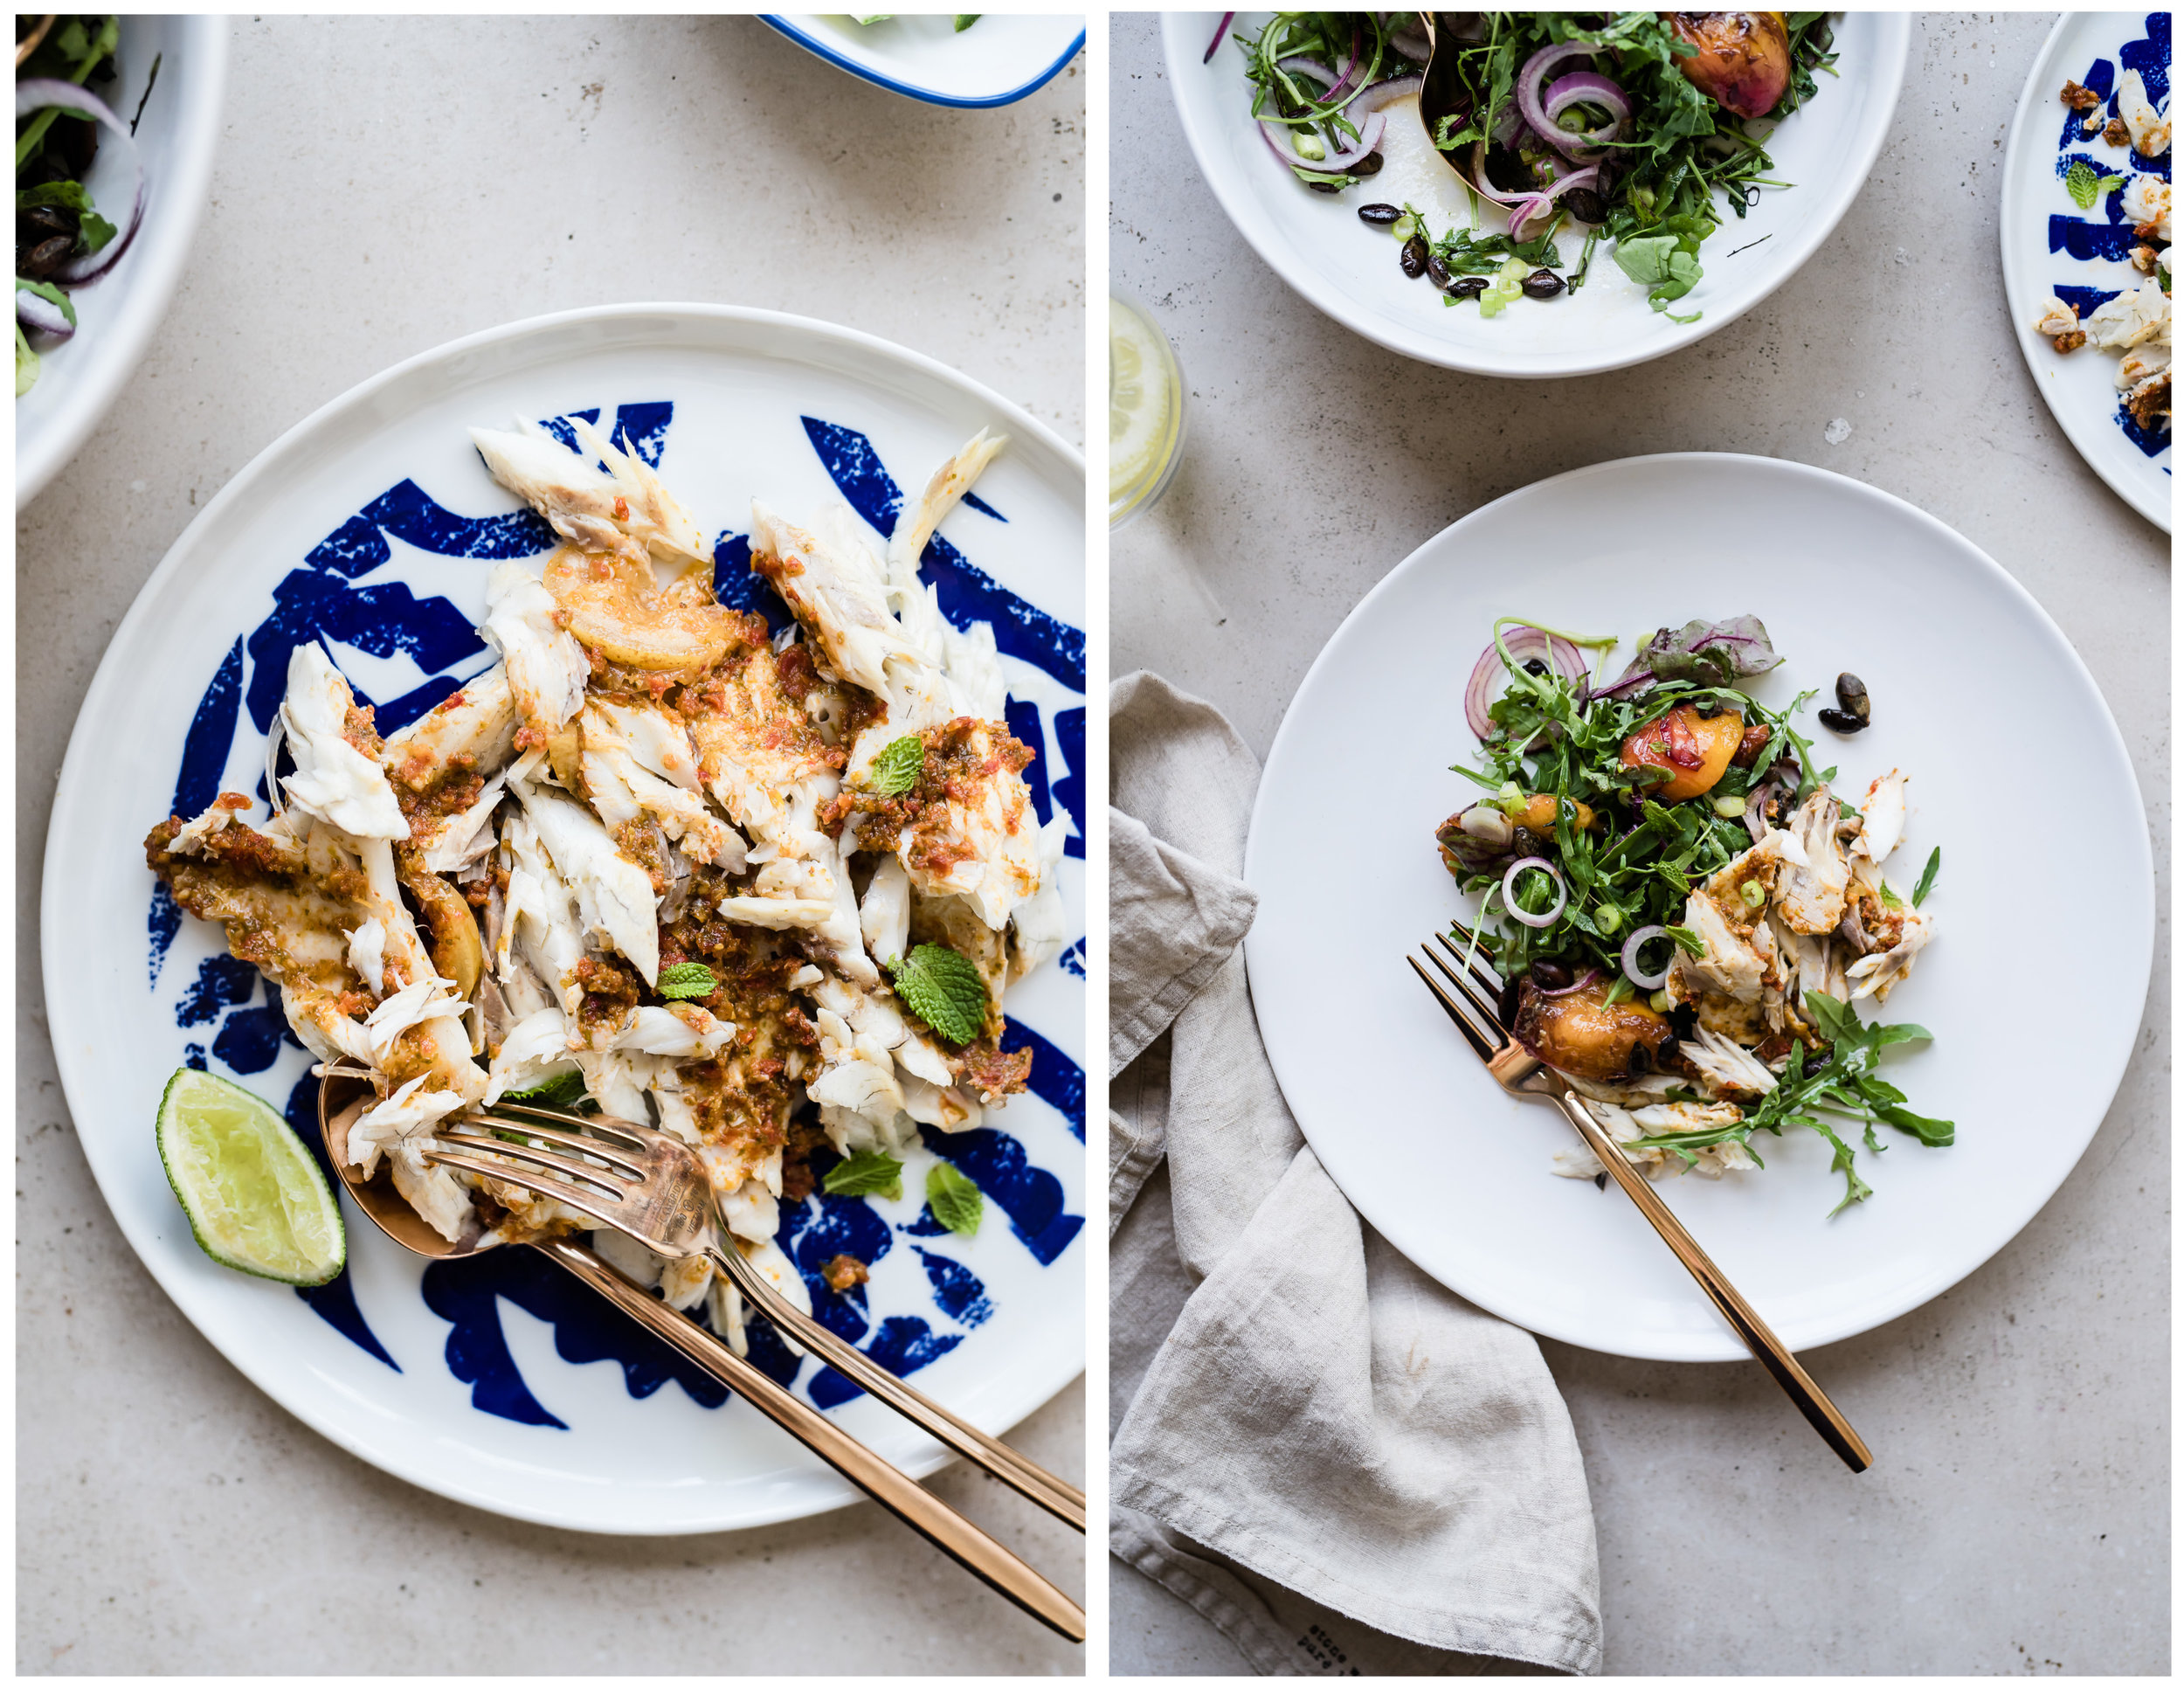 Gather a Table - BAKED WHOLE FISH WITH SUNDRIED TOMATO STUFFING & BALSAMIC NECTARINE SALAD